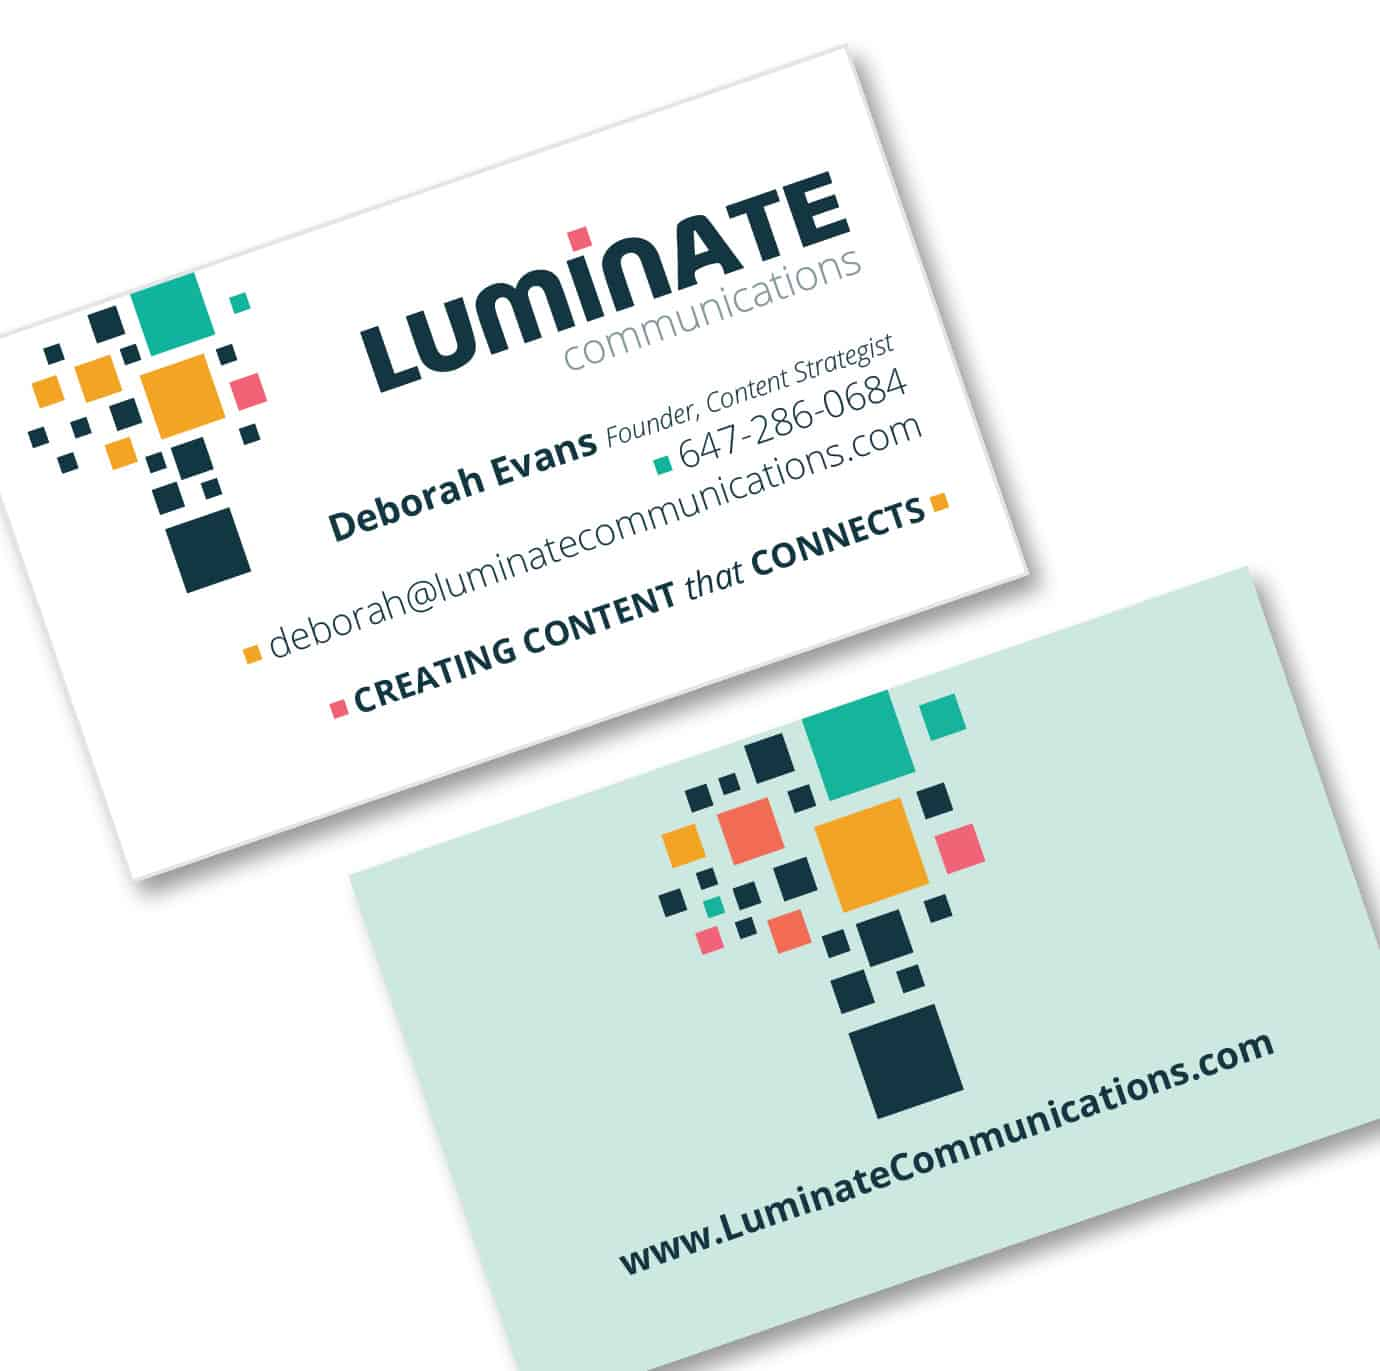 Luminate Communications